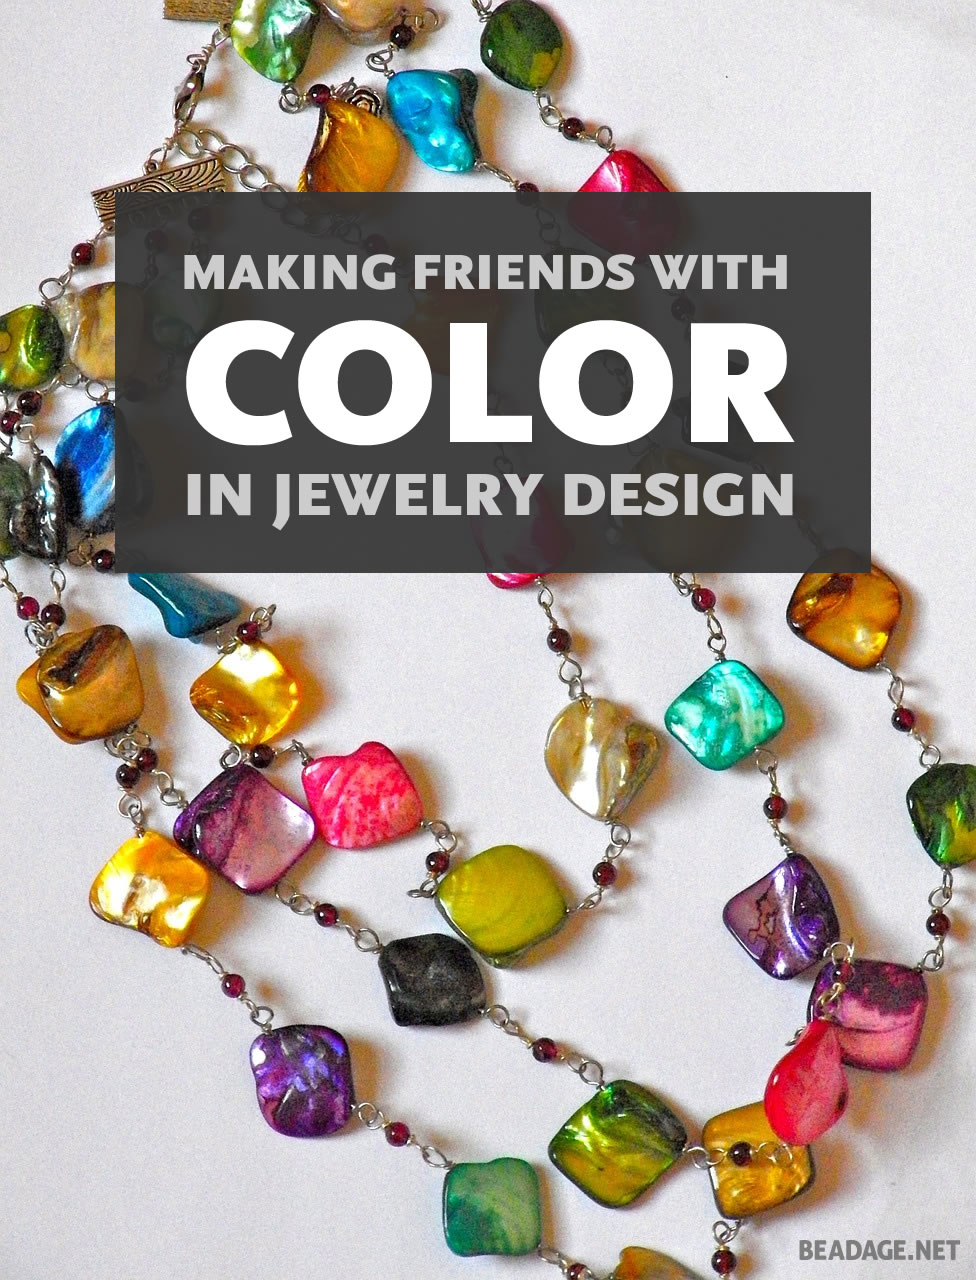 Making Friends With Color in Jewelry Design